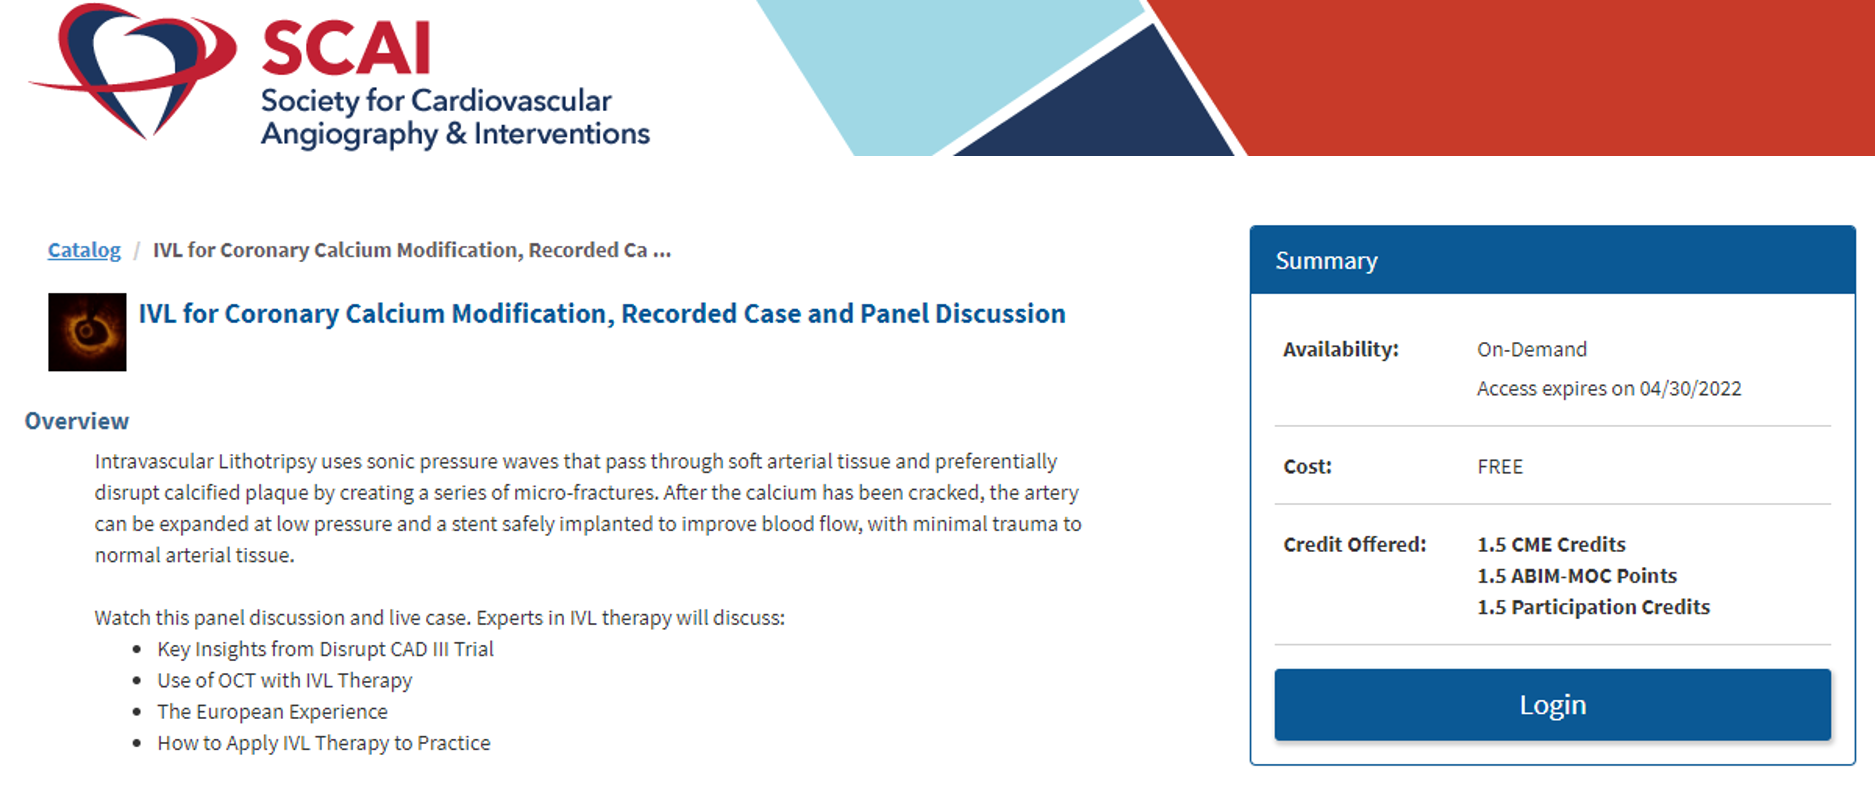 SCAI CME Page for Catalyst Post